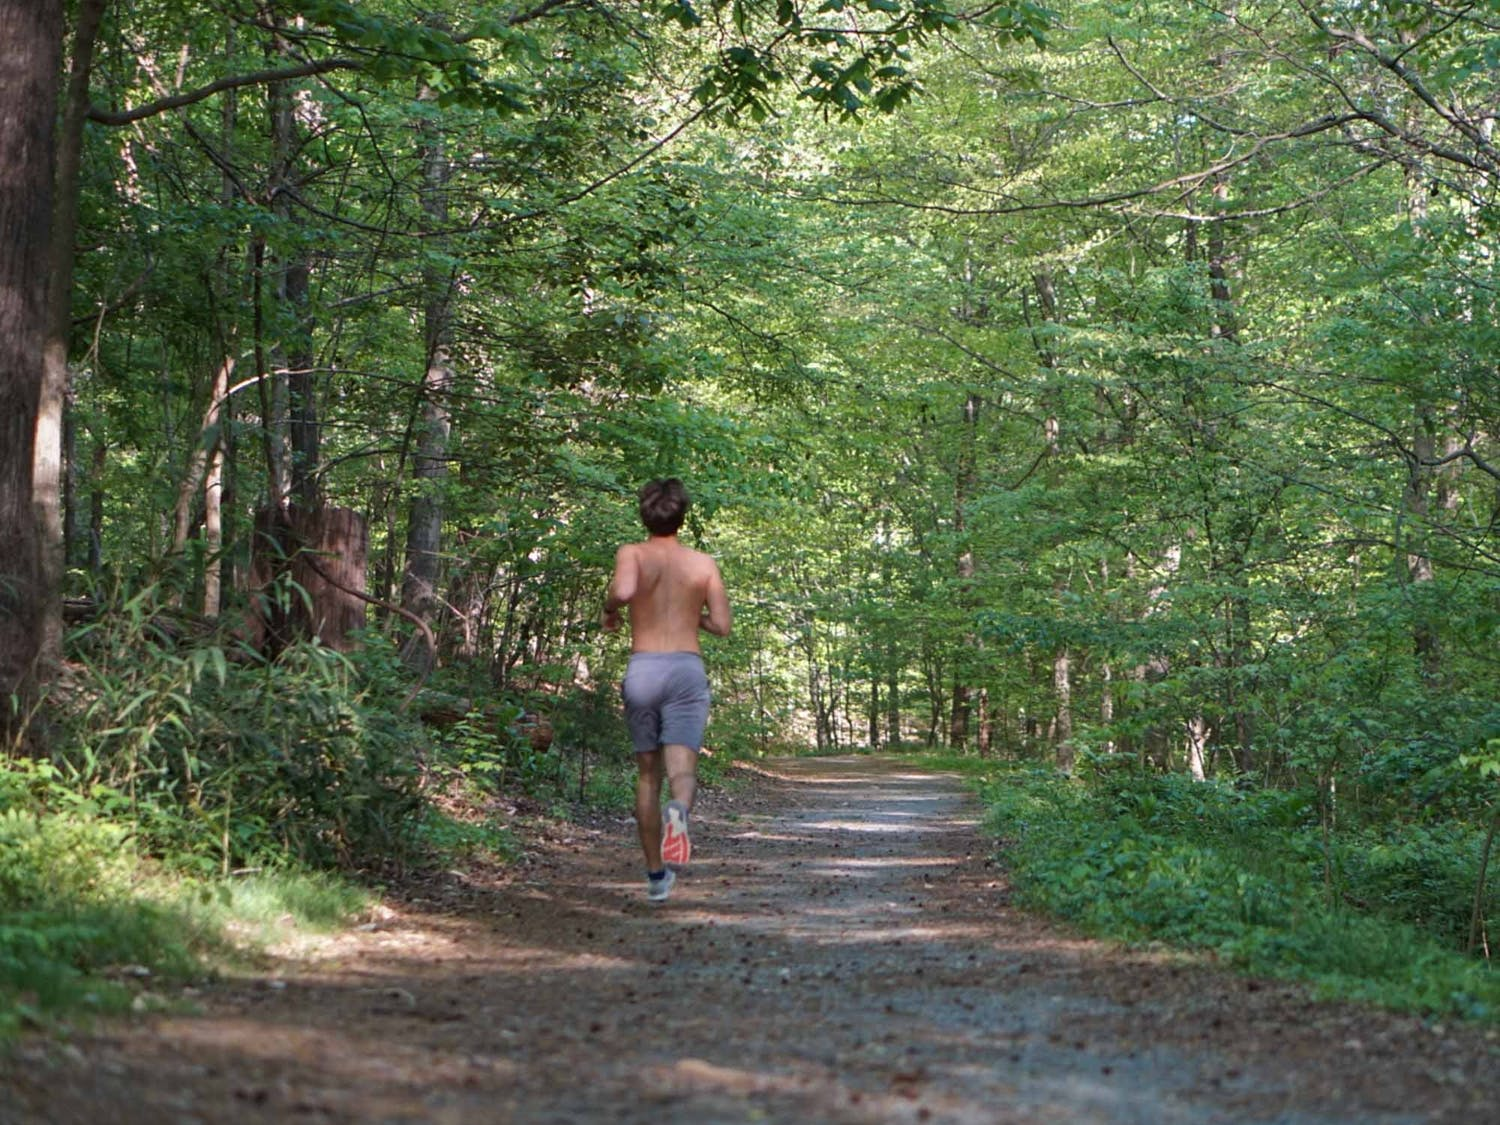 Junior Bridger Scoggins embraces the spring weather by running on trails near campus on April 13, 2021.